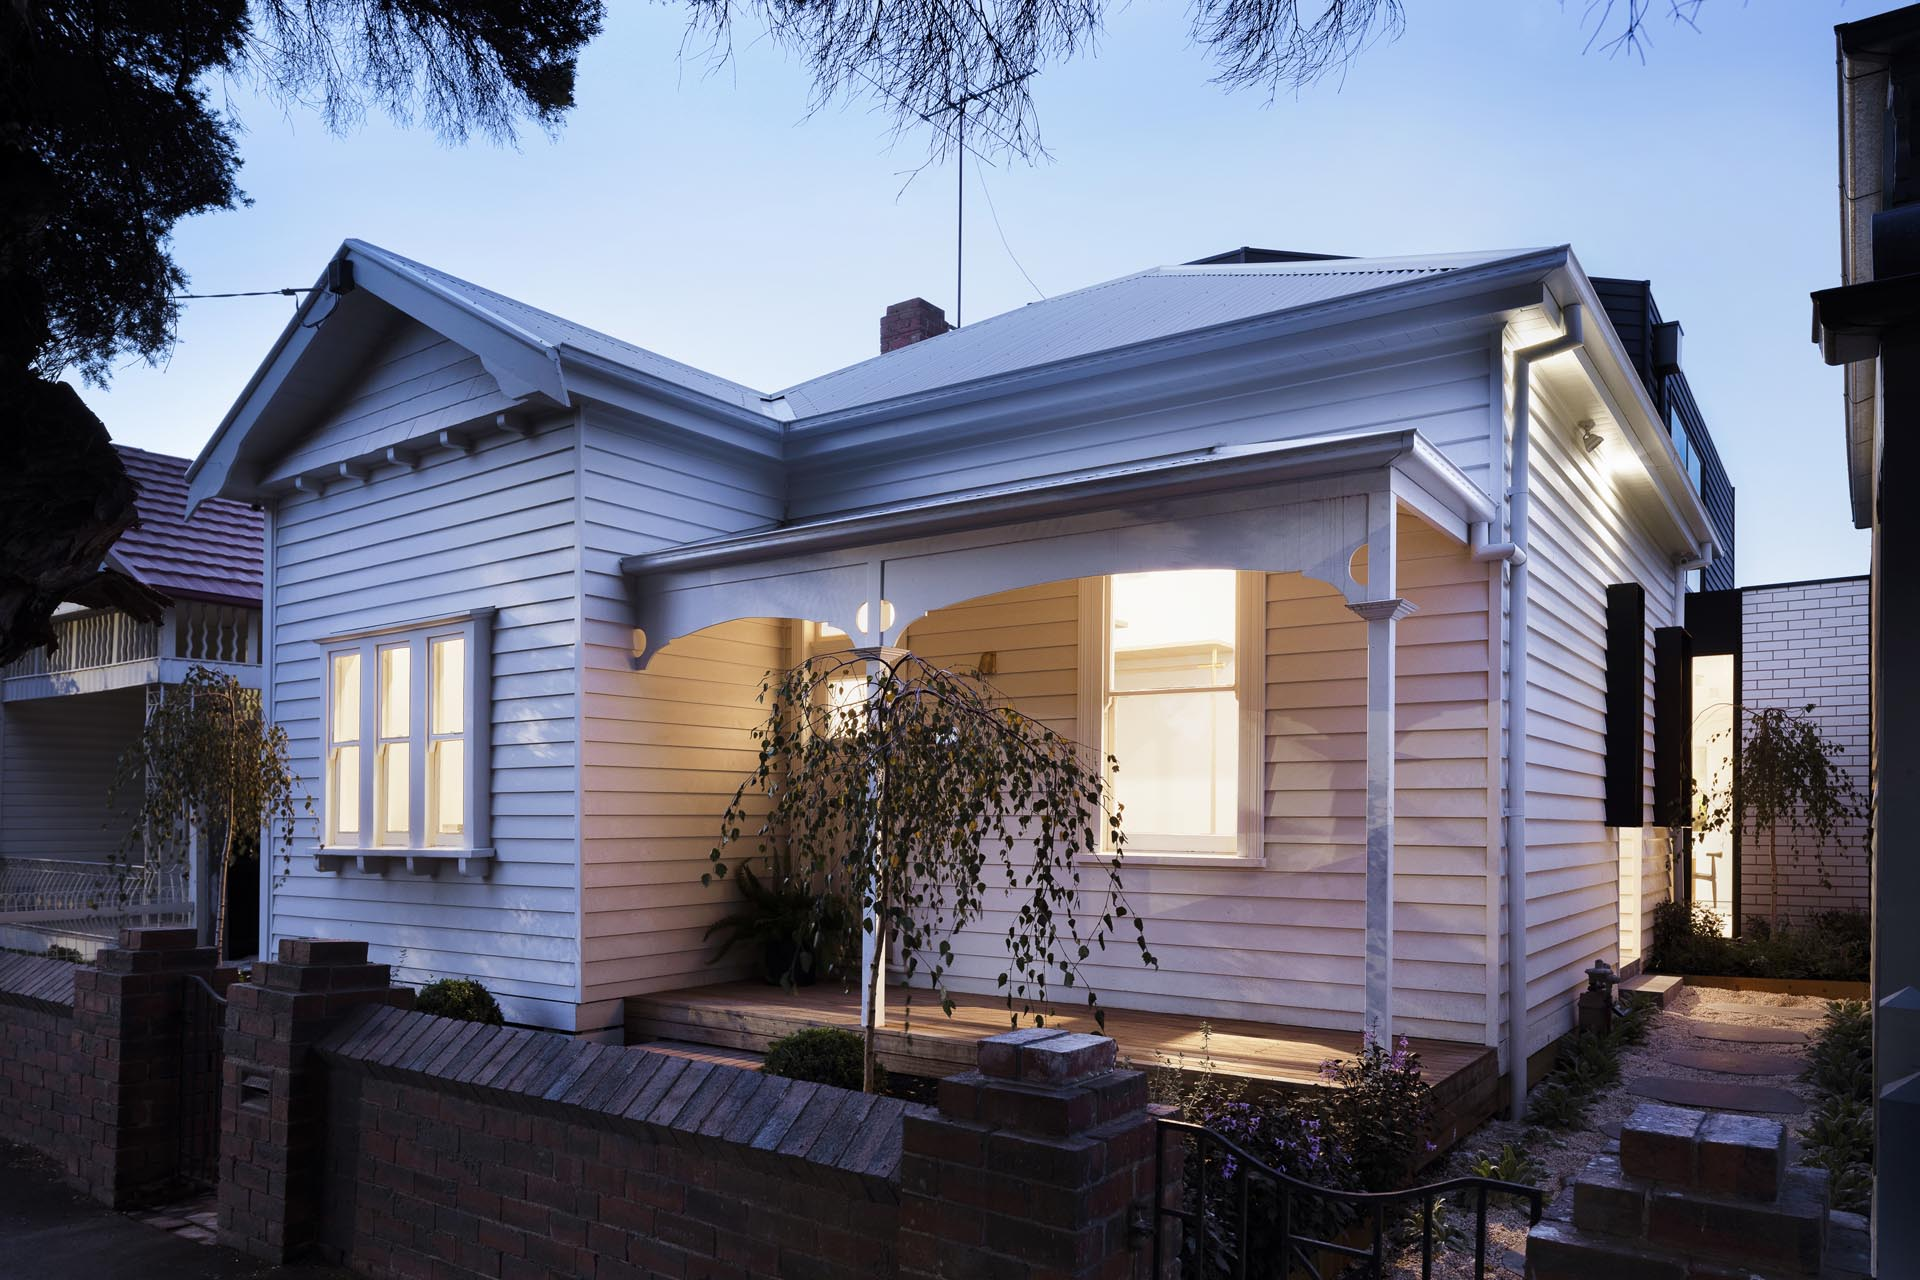 Preston Lane Architects has designed the renovation of an existing unliveable house in Brunswick, Victoria.